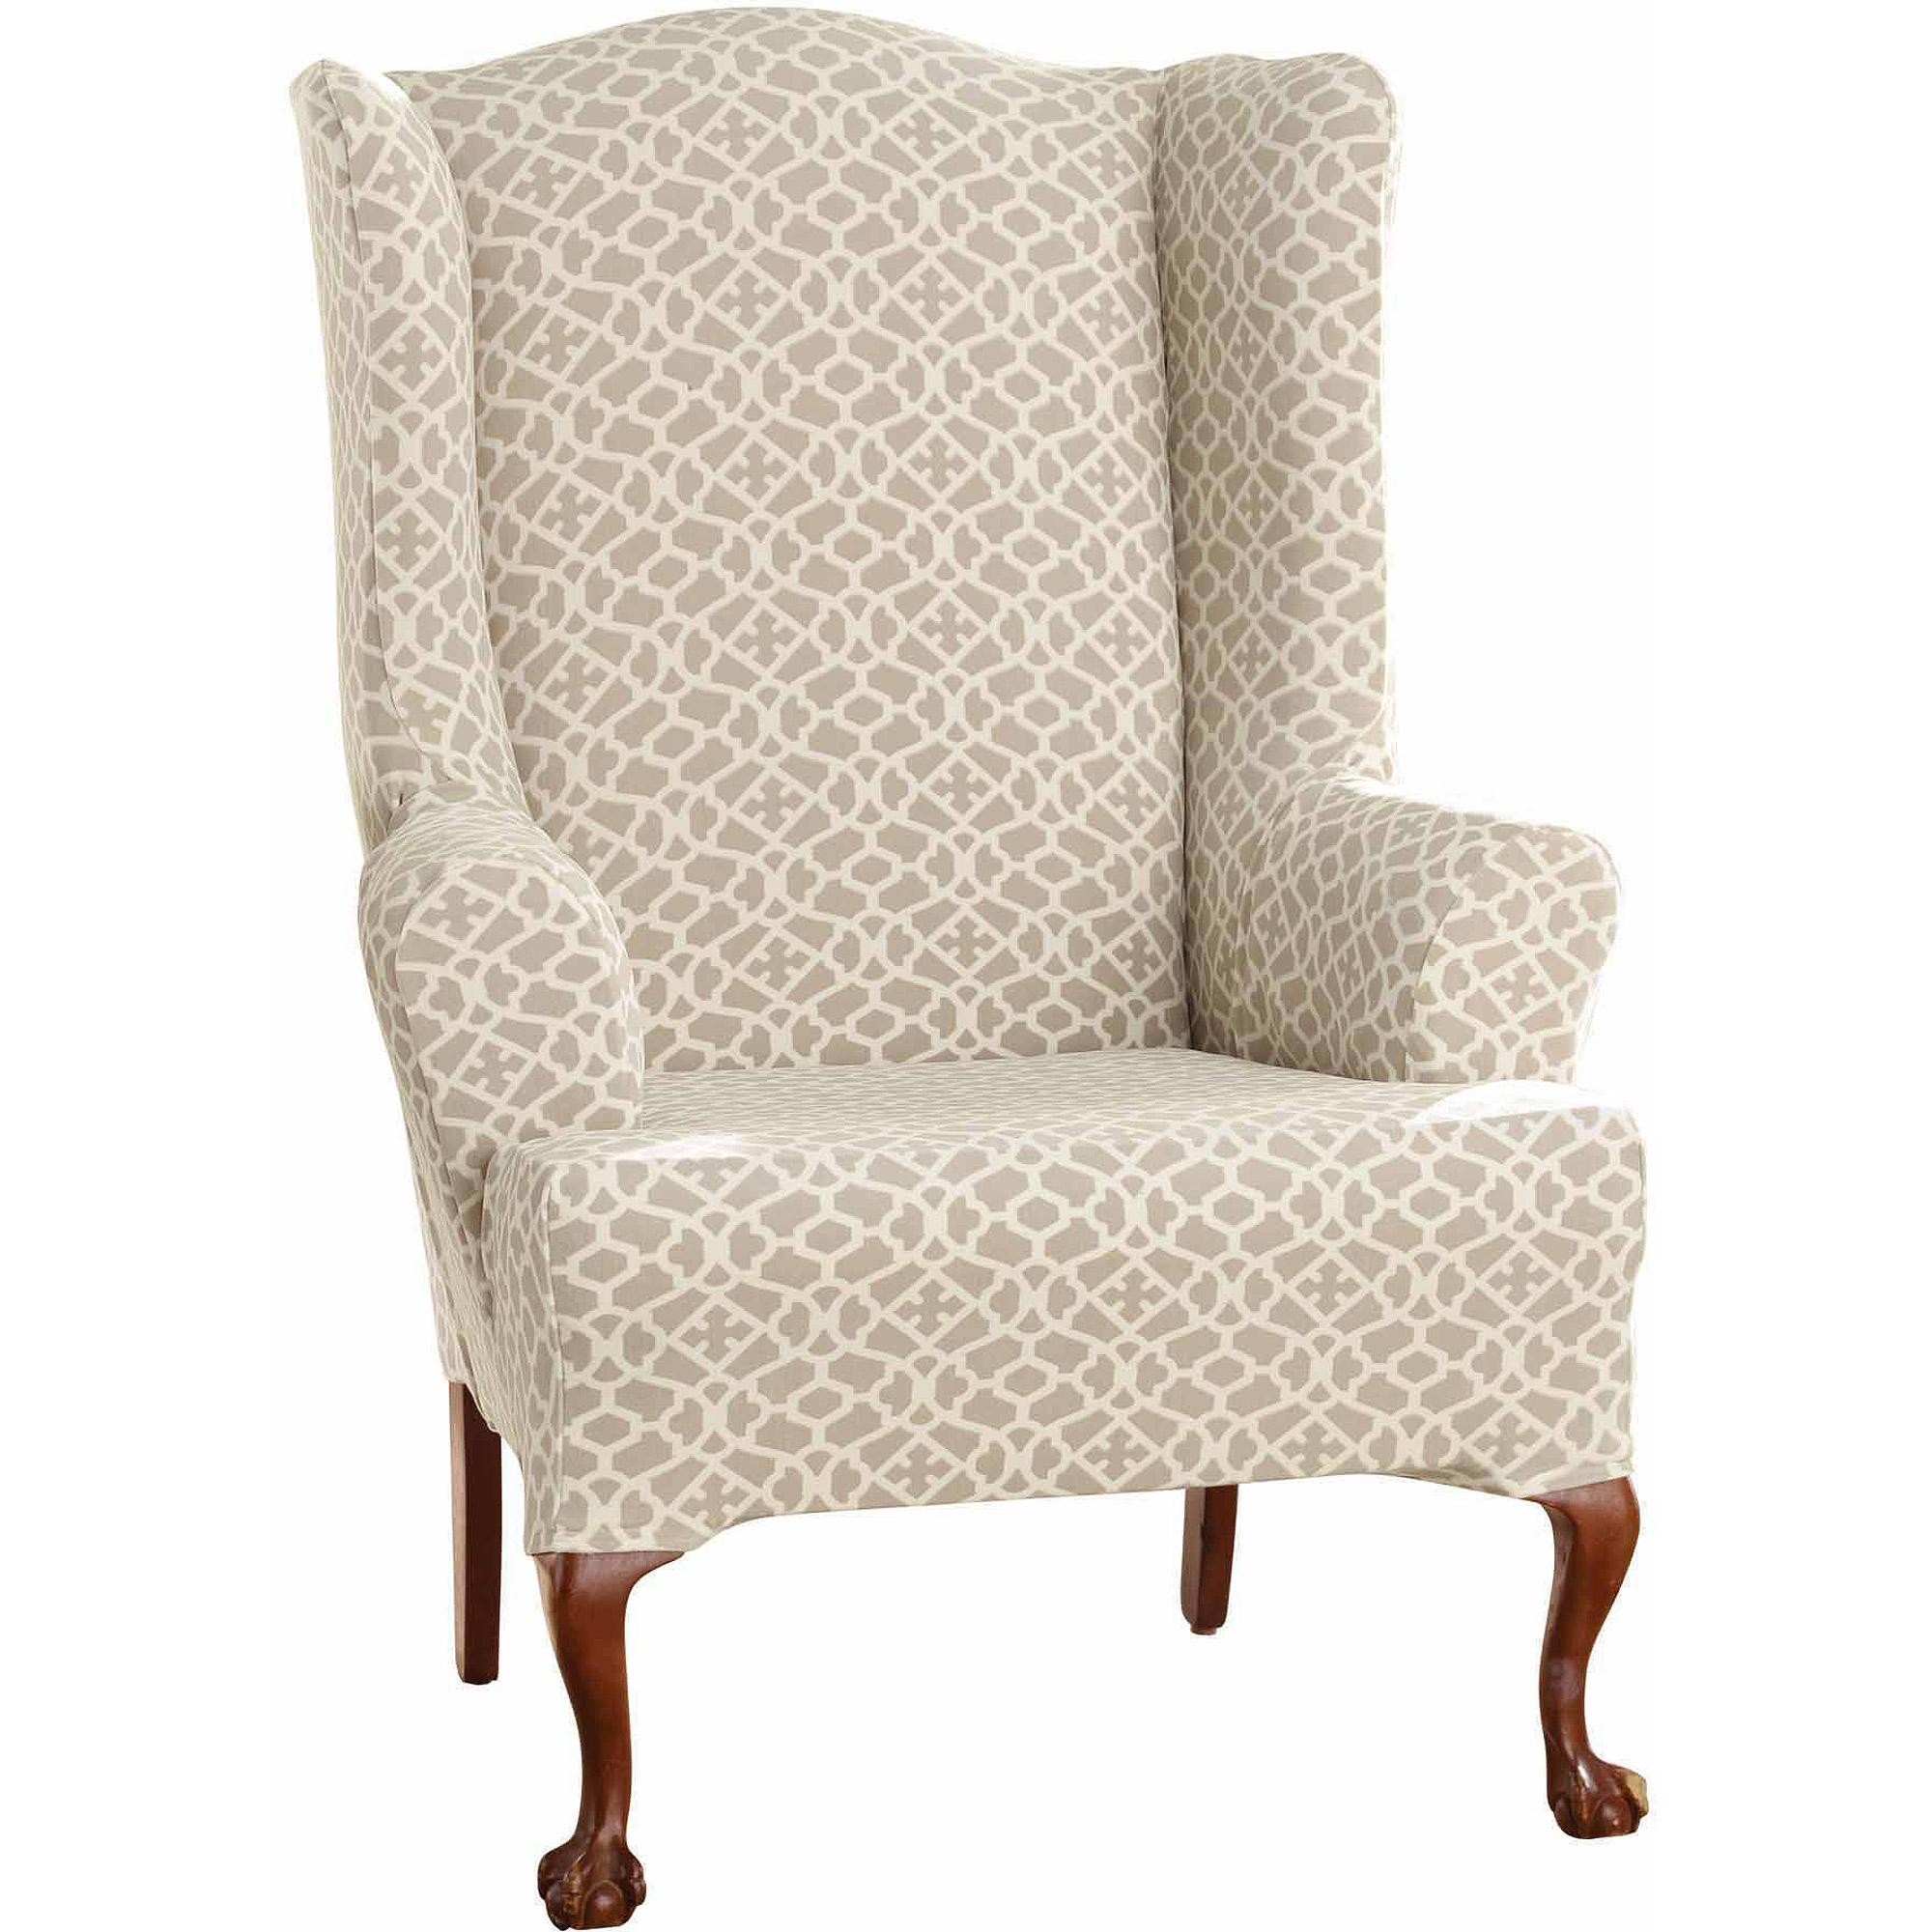 Chairs Stylish Patterned Wingback Chair Style Also Satisfying Living Room  Interior Wing Slipcover Upholstered Beige Pattern Armchair Sofa Couch  Covers